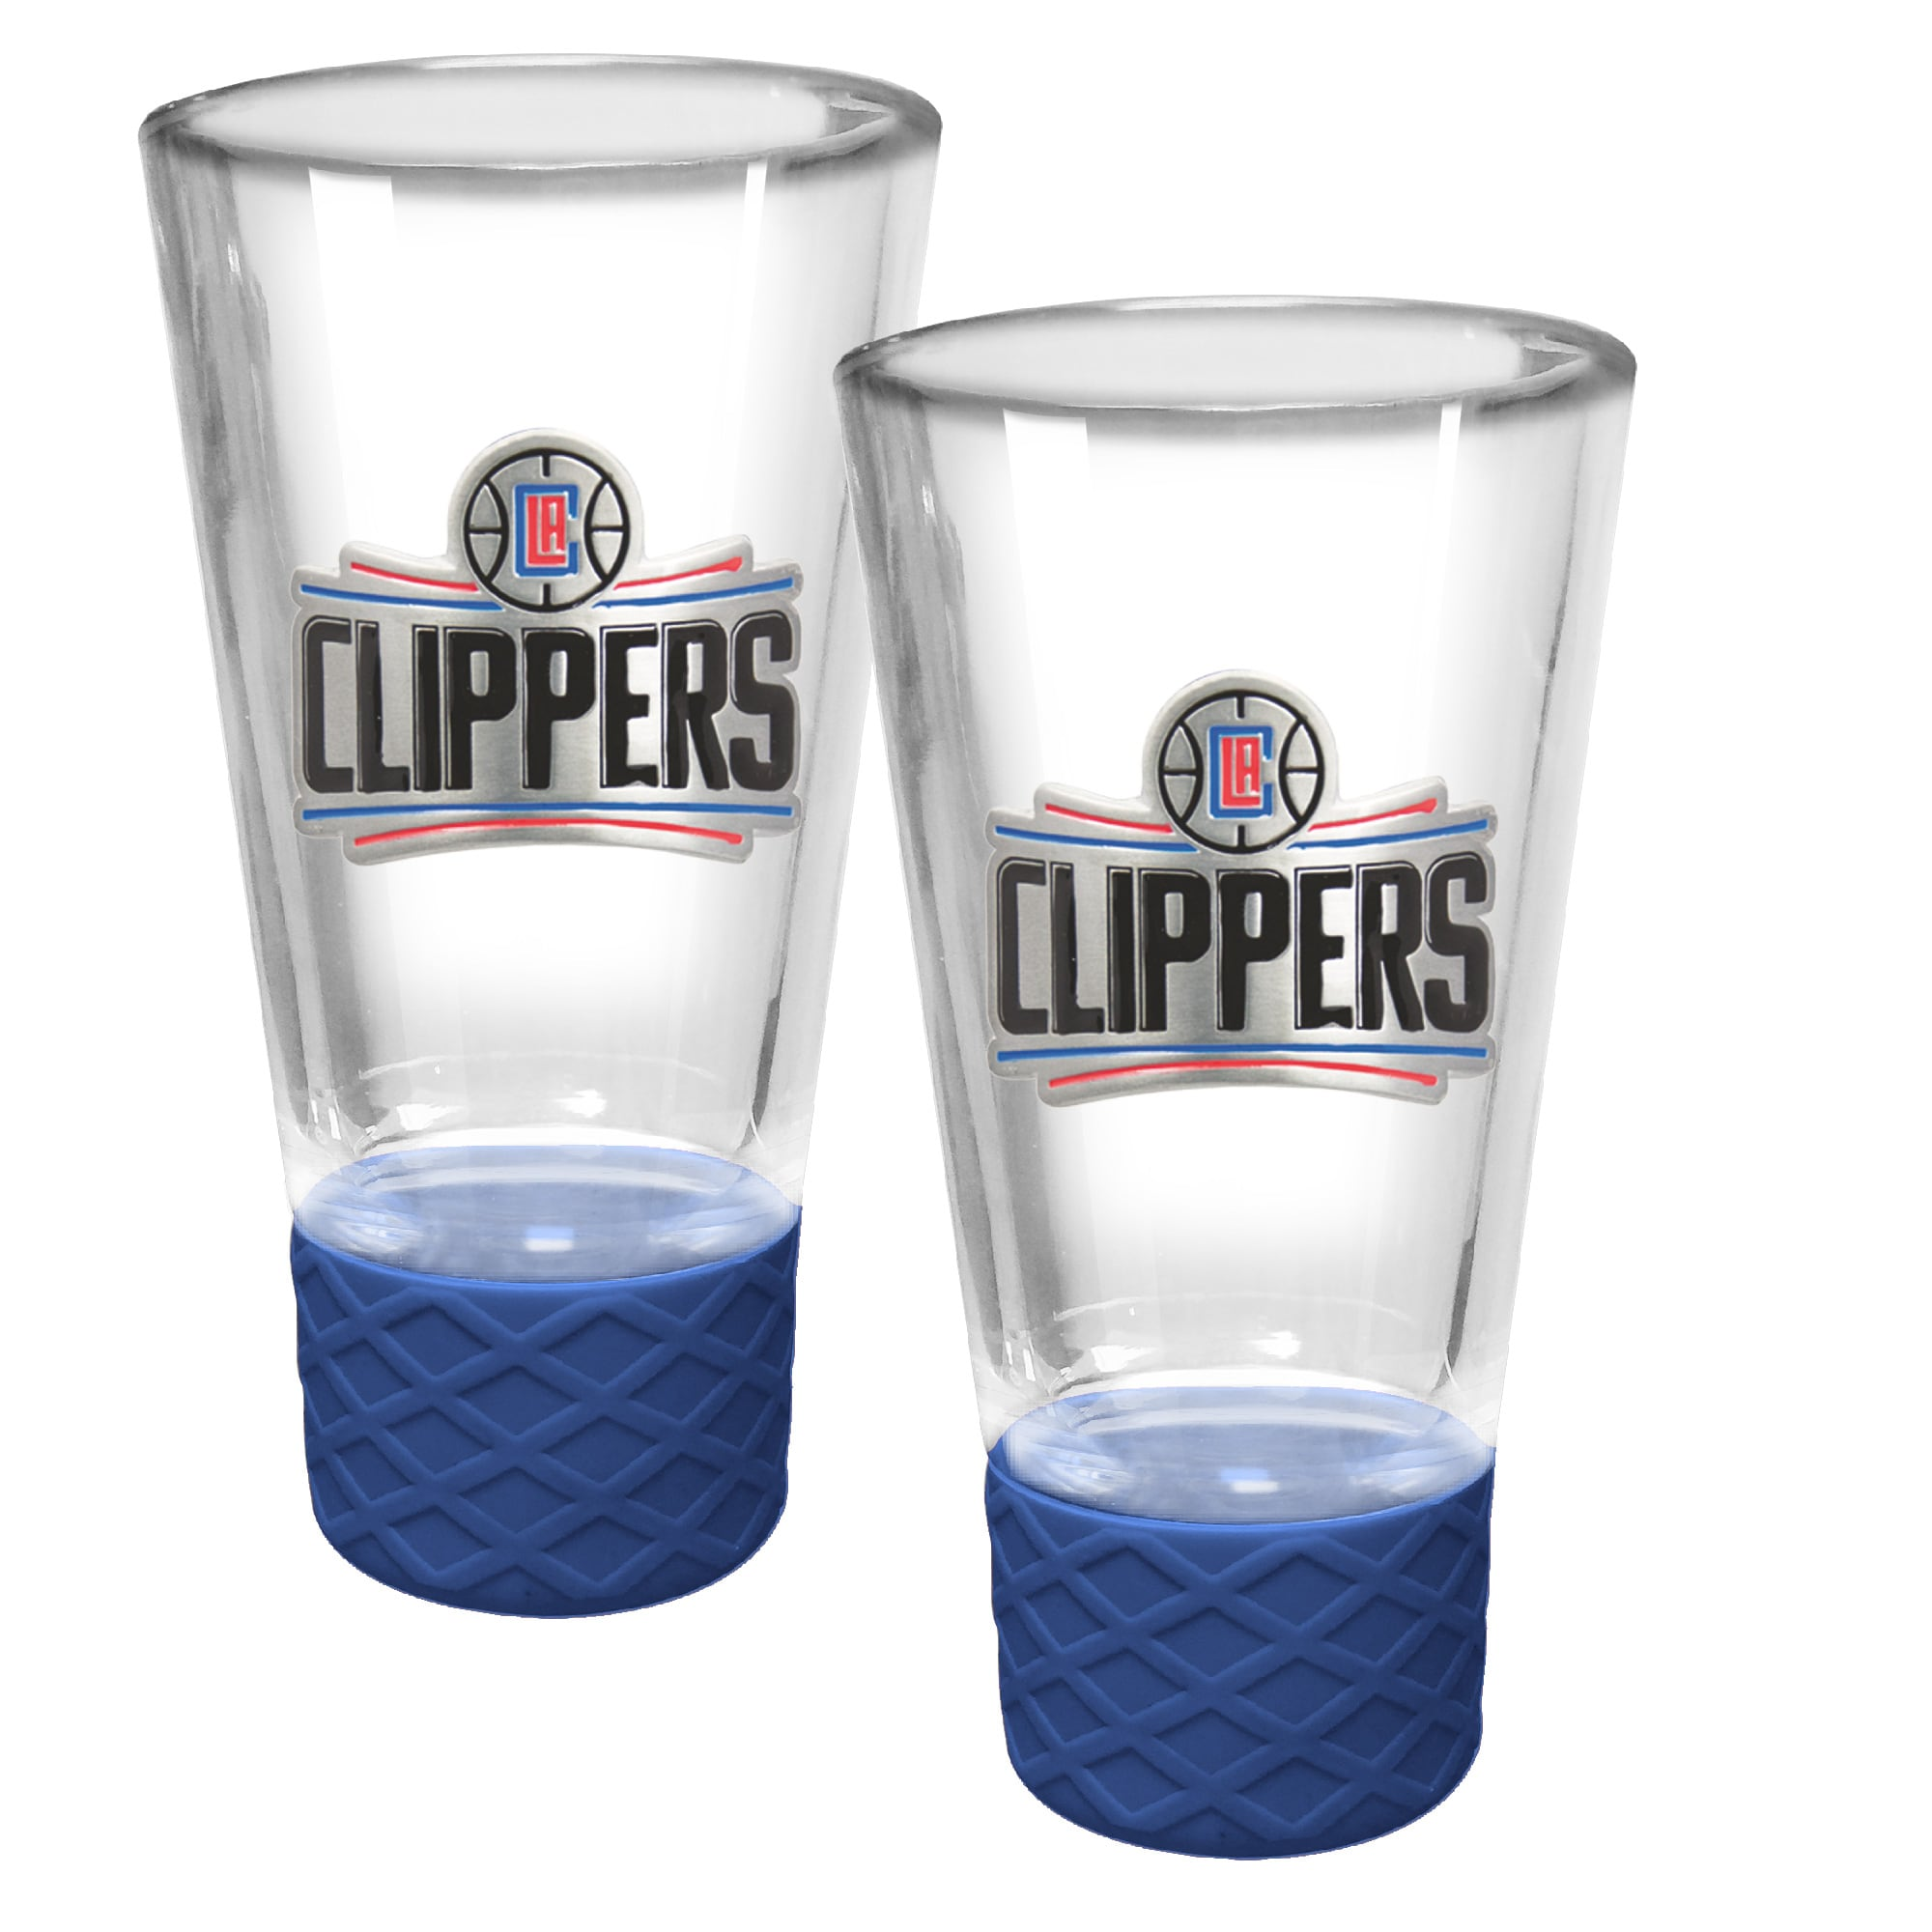 LA Clippers 2-Pack Cheer Shot Set with Silicone Grip